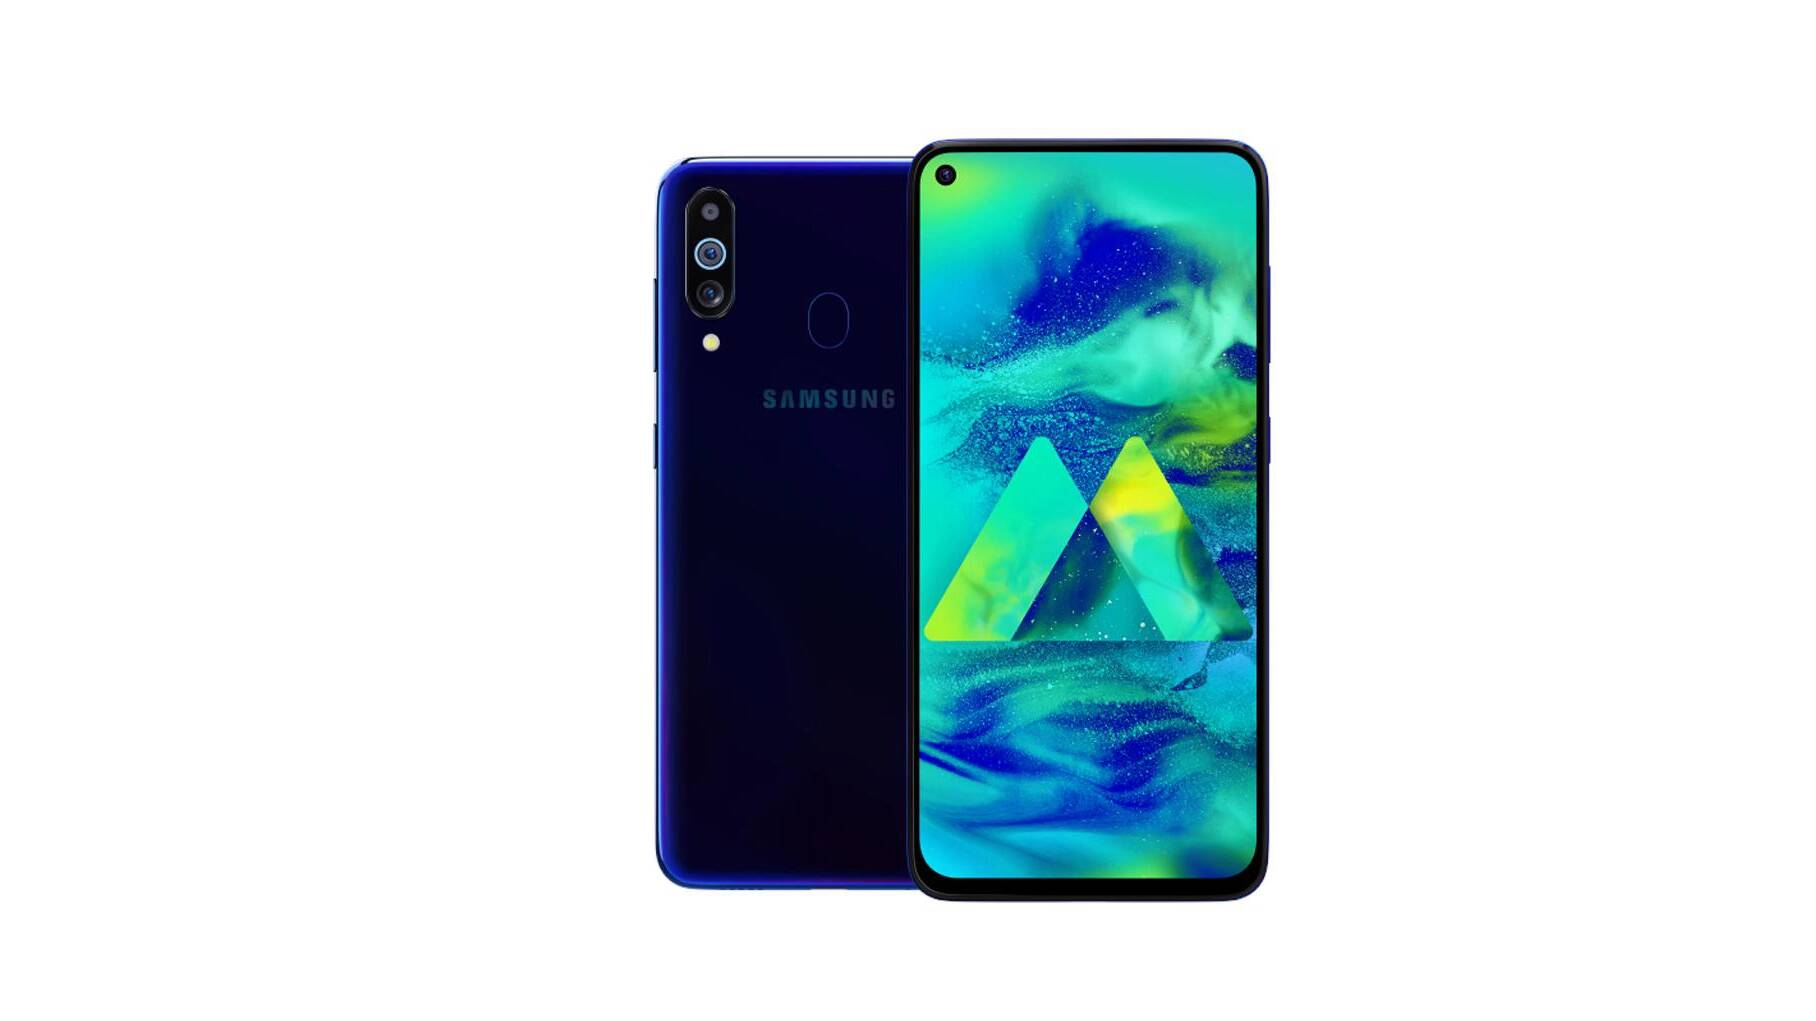 Sforum - Latest technology information page he-render-Galaxy-M40-1-1 Some interesting information about the Galaxy M40 camera system has just been revealed